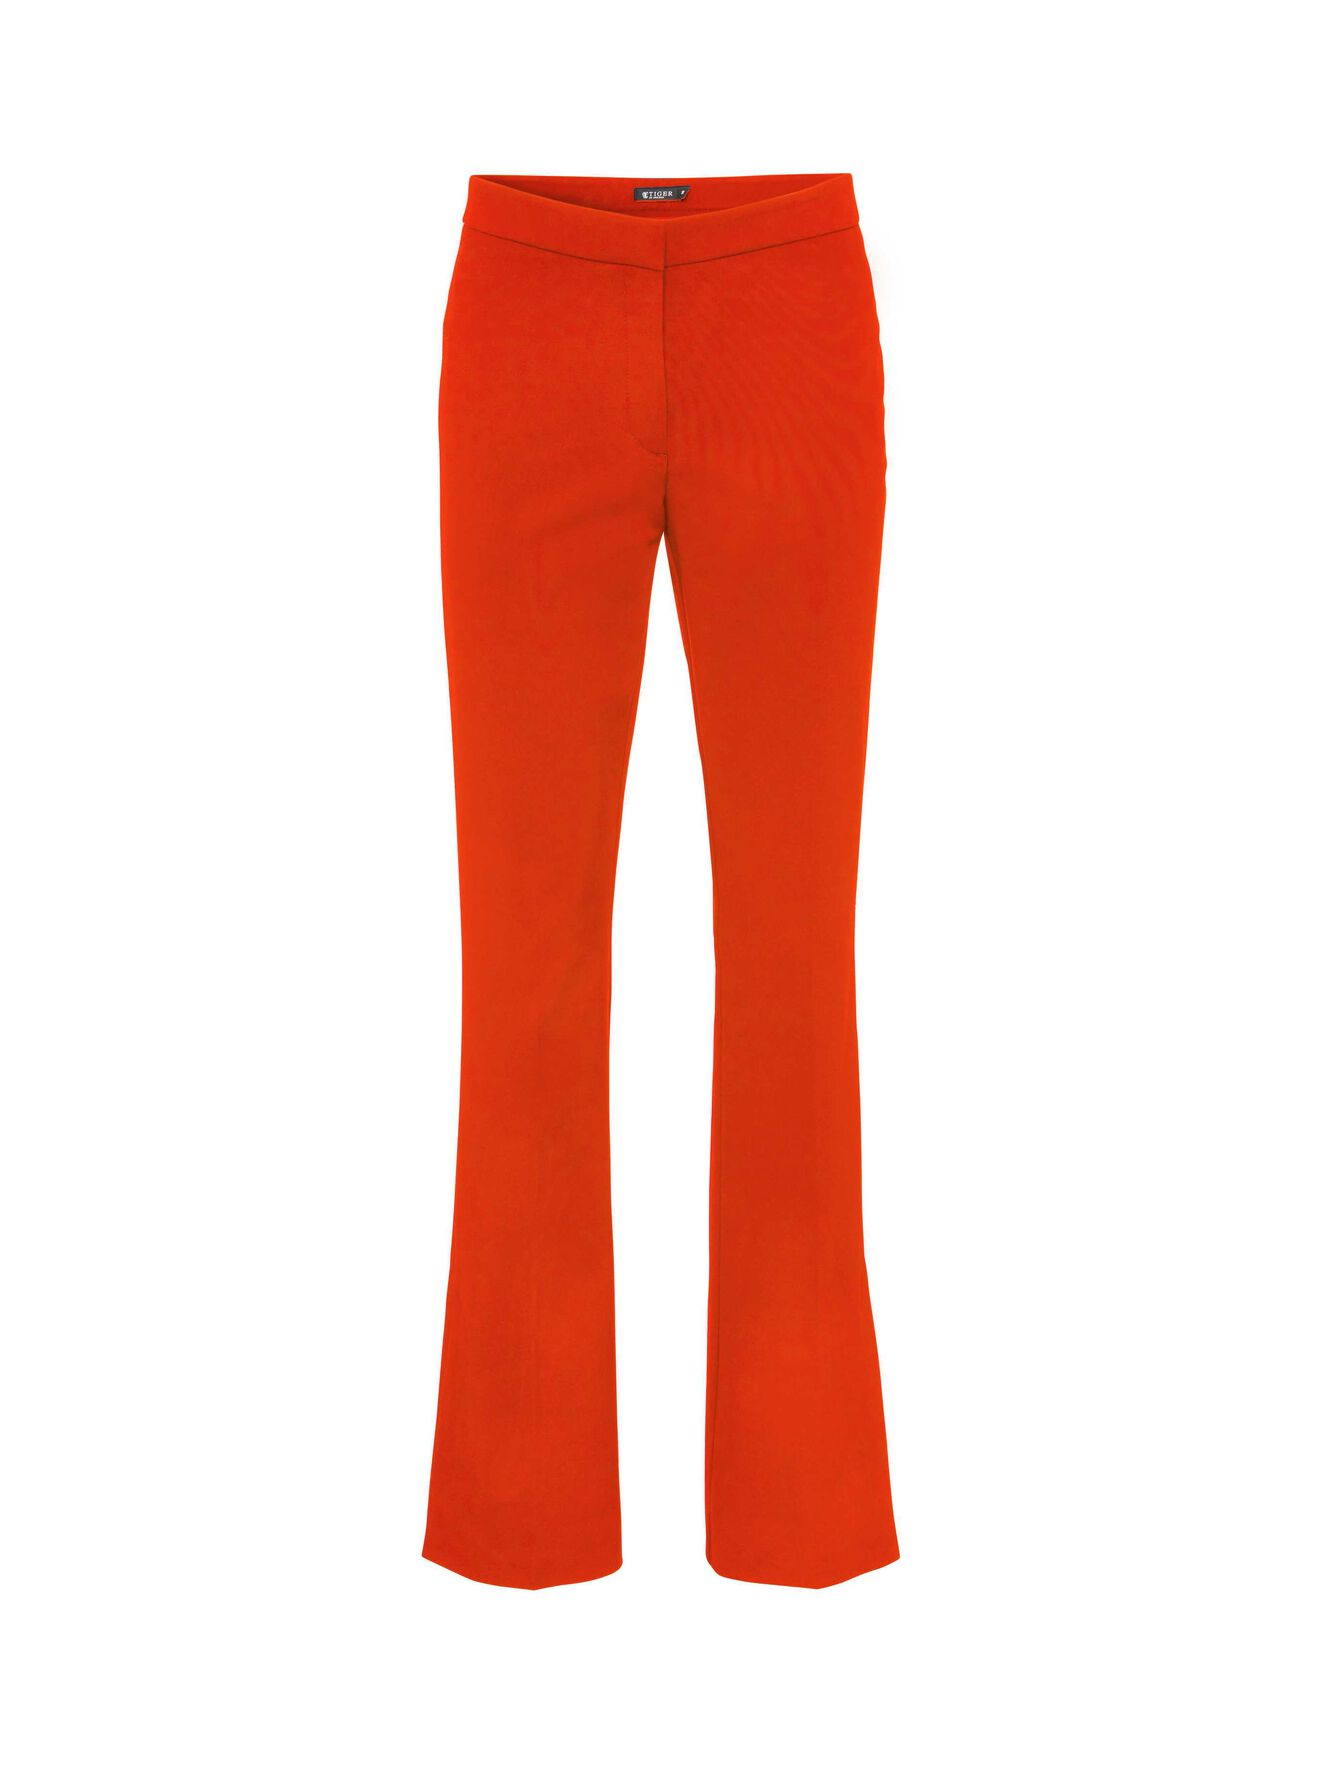 Antigo Trousers in Flame Red from Tiger of Sweden